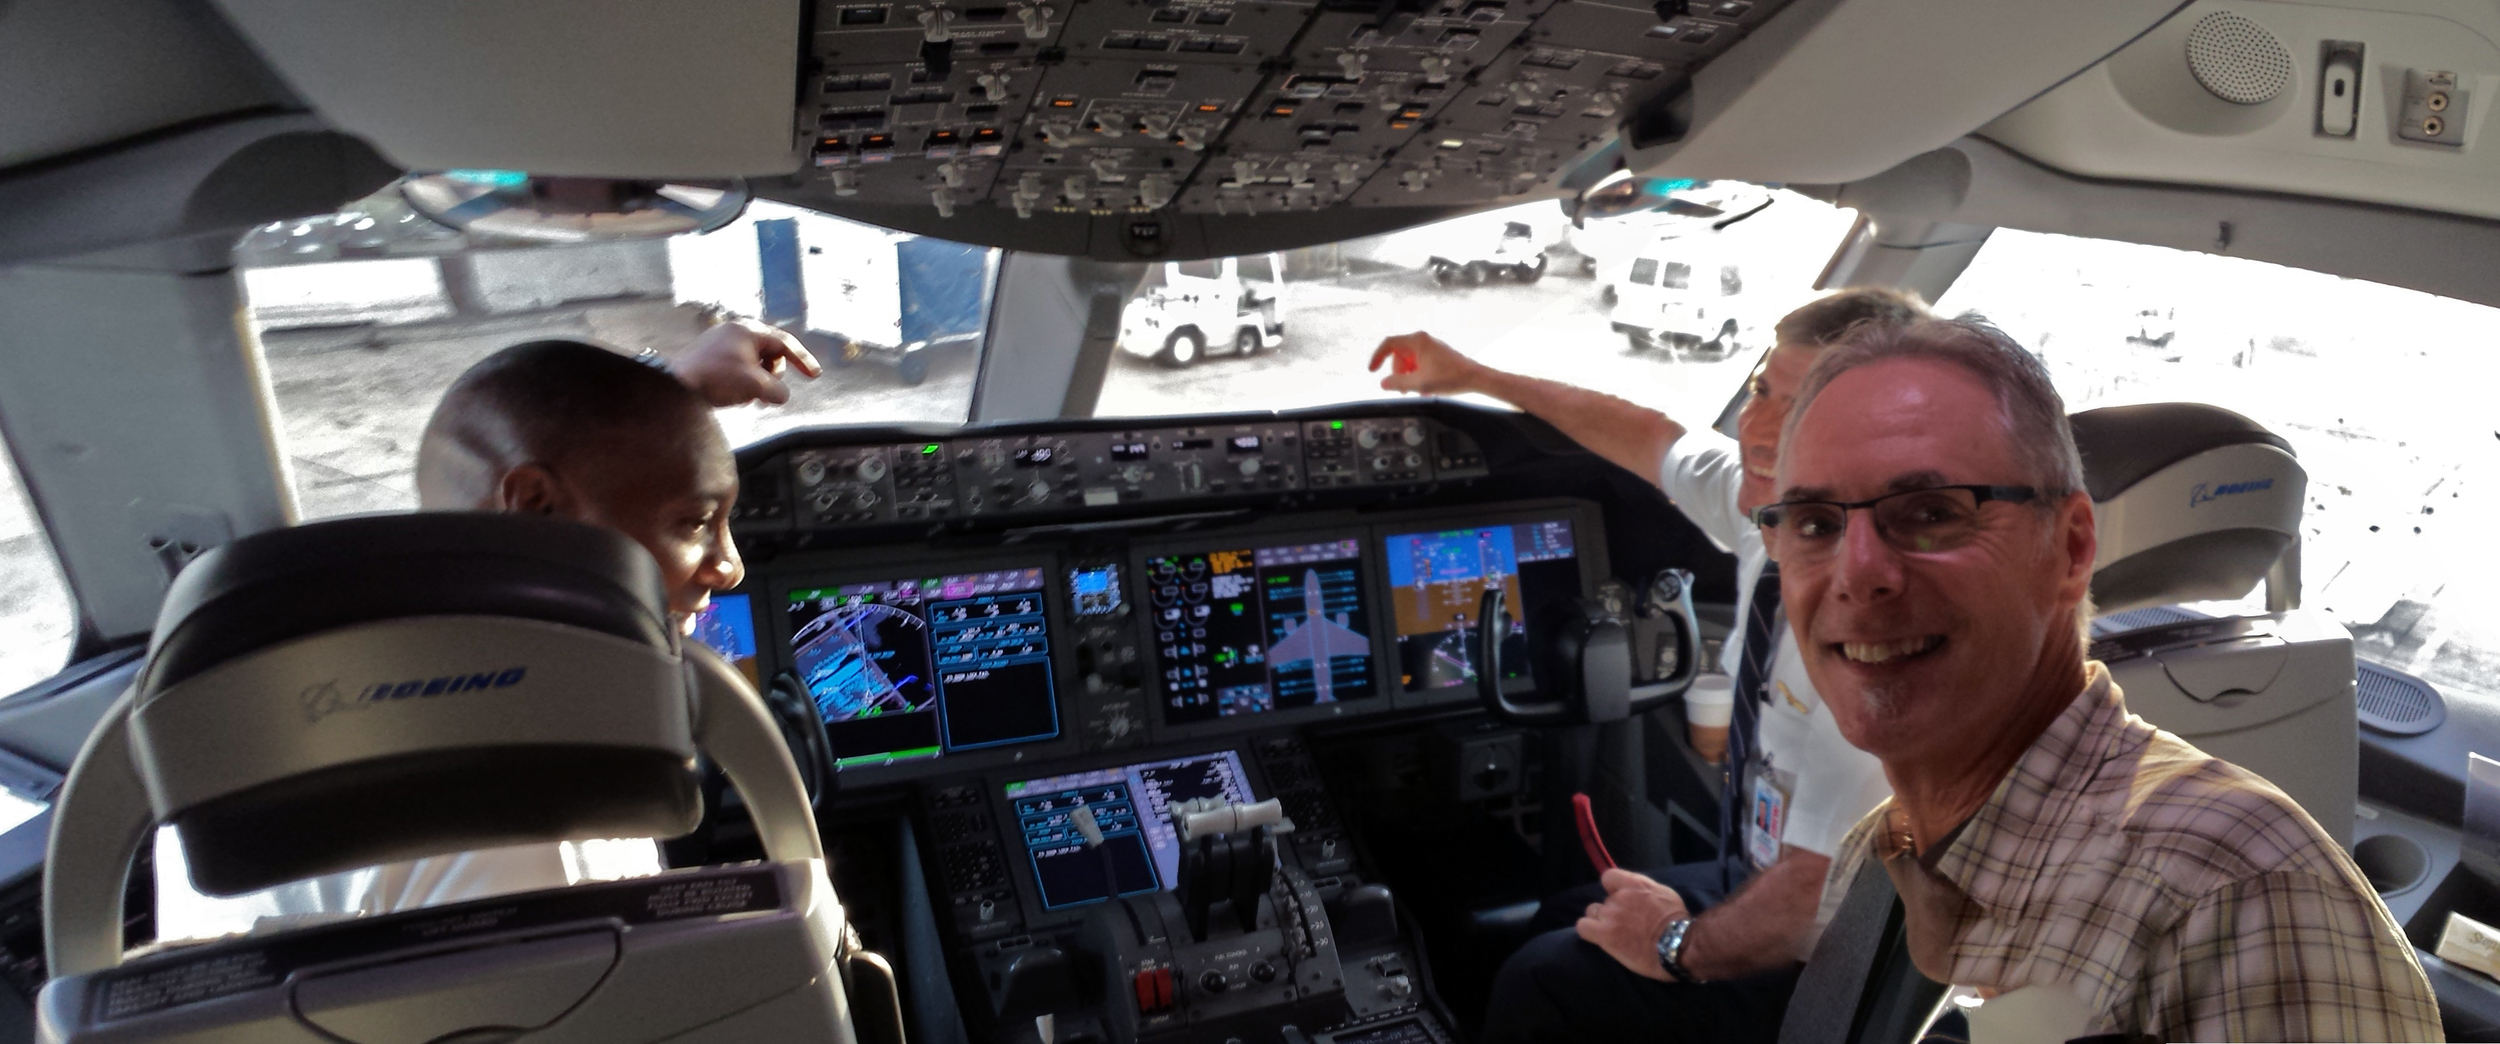 Testing the jump-seat on a Dreamliner